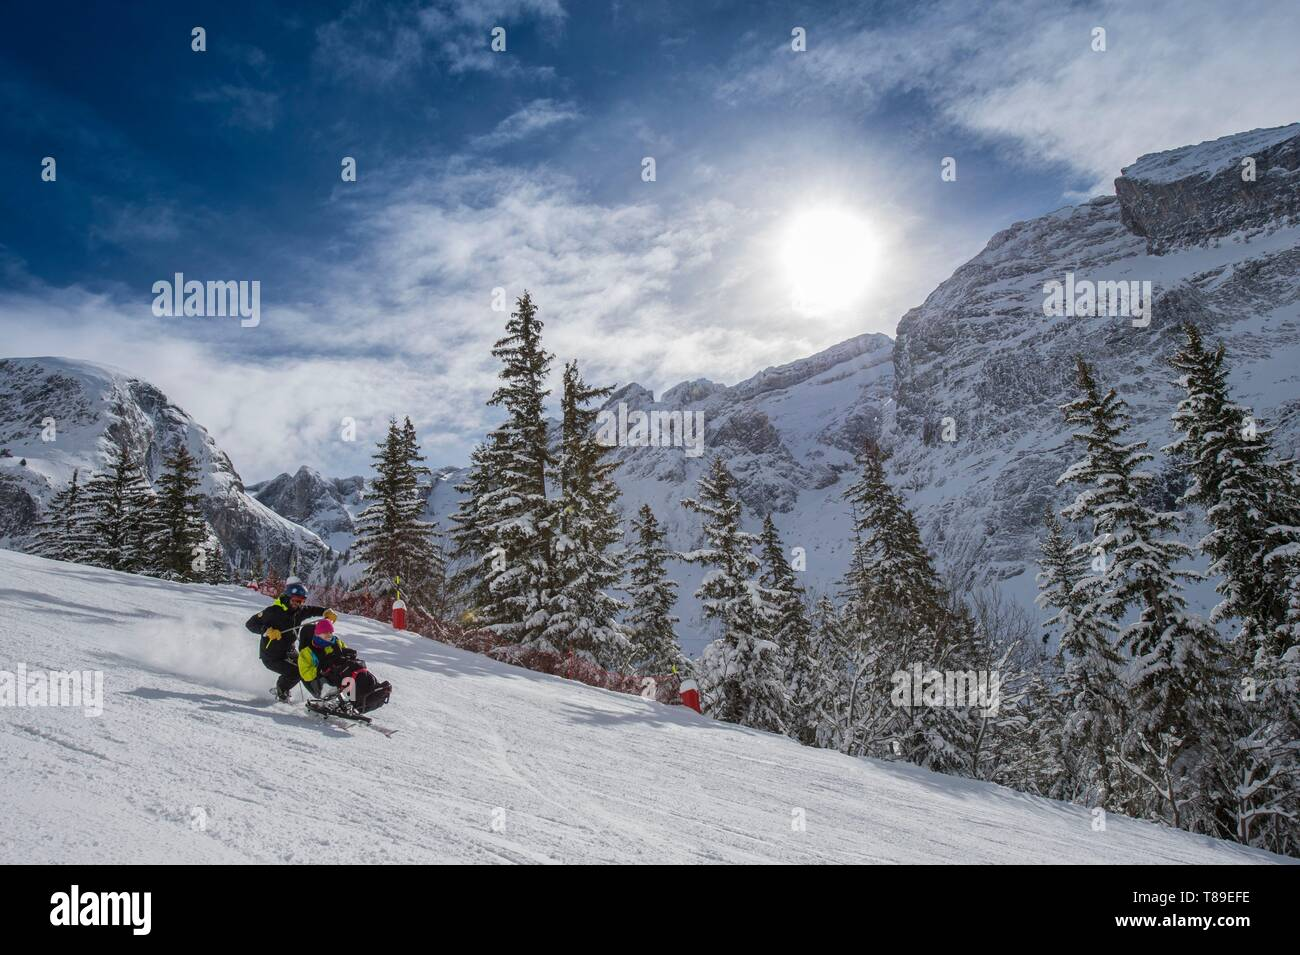 France, Savoie, Massif de la Vanoise, National Park, Pralognan La Vanoise, practice of handiskiing in tandem skiing with an instructor Stock Photo